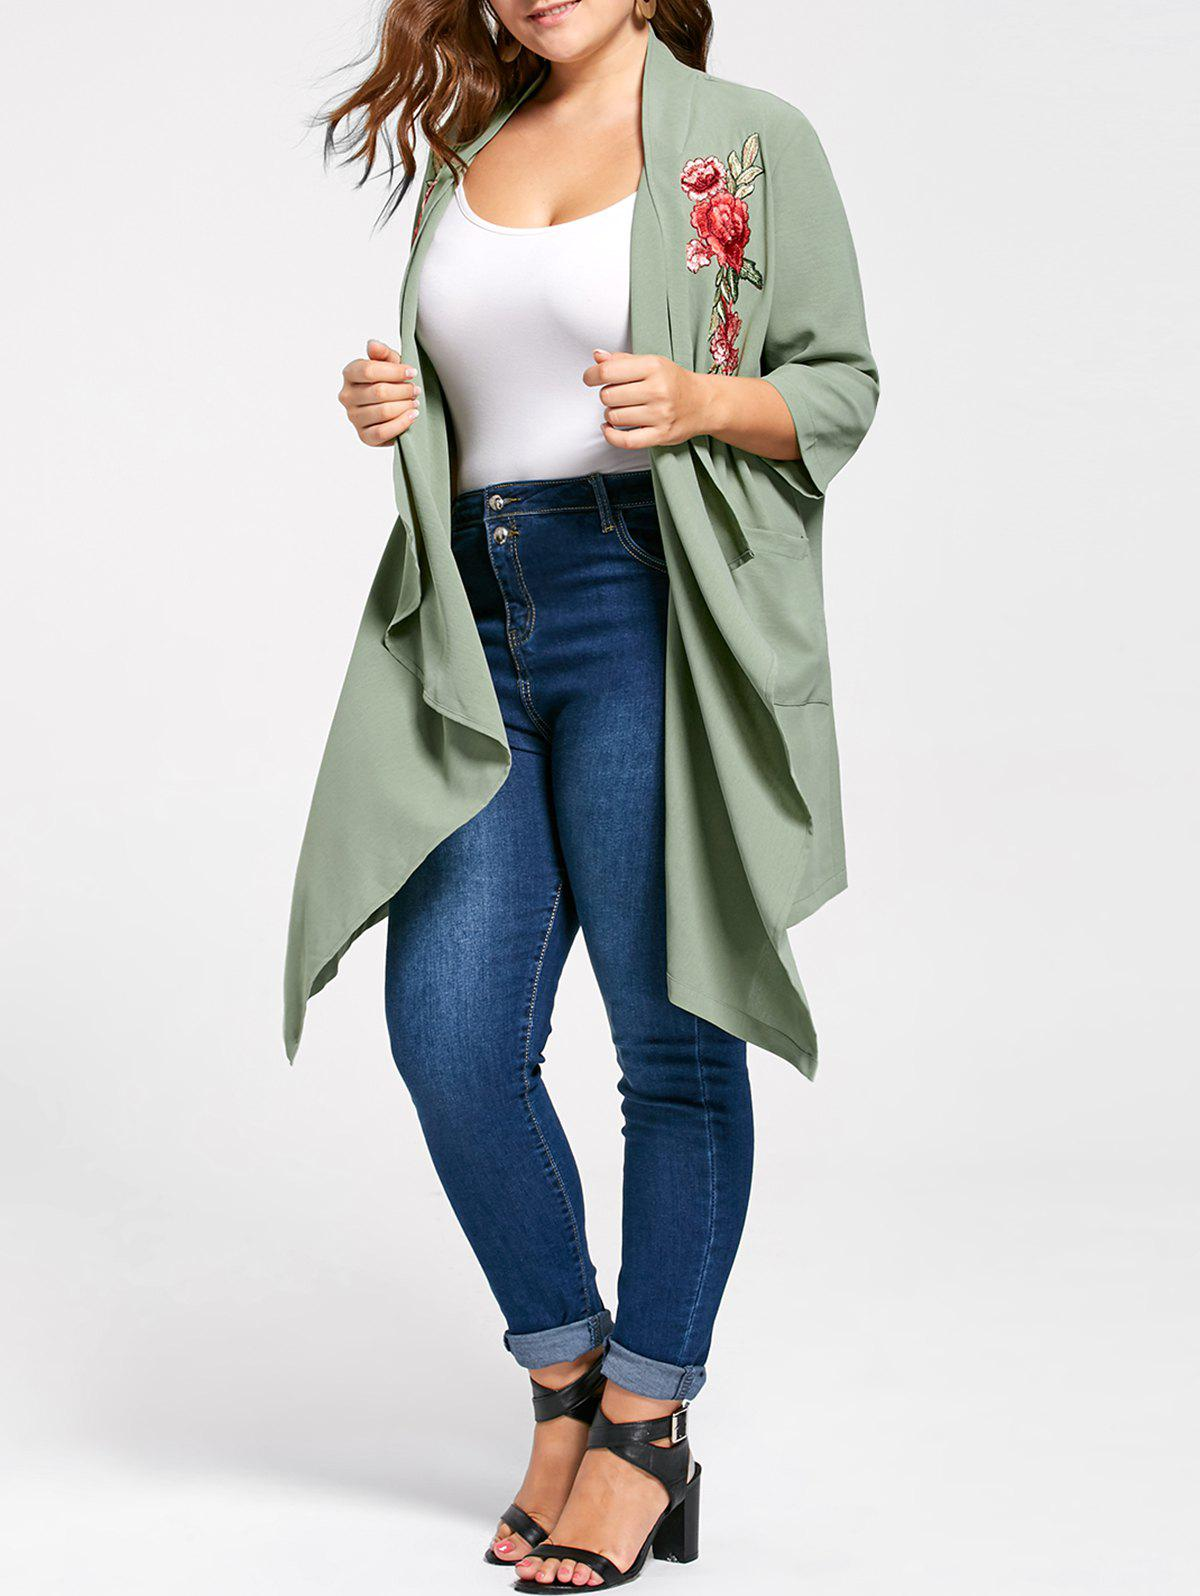 Plus Size Embroidered Flowy Drape CardiganWOMEN<br><br>Size: 4XL; Color: PEA GREEN; Type: Cardigans; Material: Polyester; Sleeve Length: Three Quarter; Collar: Collarless; Style: Fashion; Season: Fall,Spring,Summer; Pattern Type: Floral; Weight: 0.4000kg; Package Contents: 1 x Cardigan;